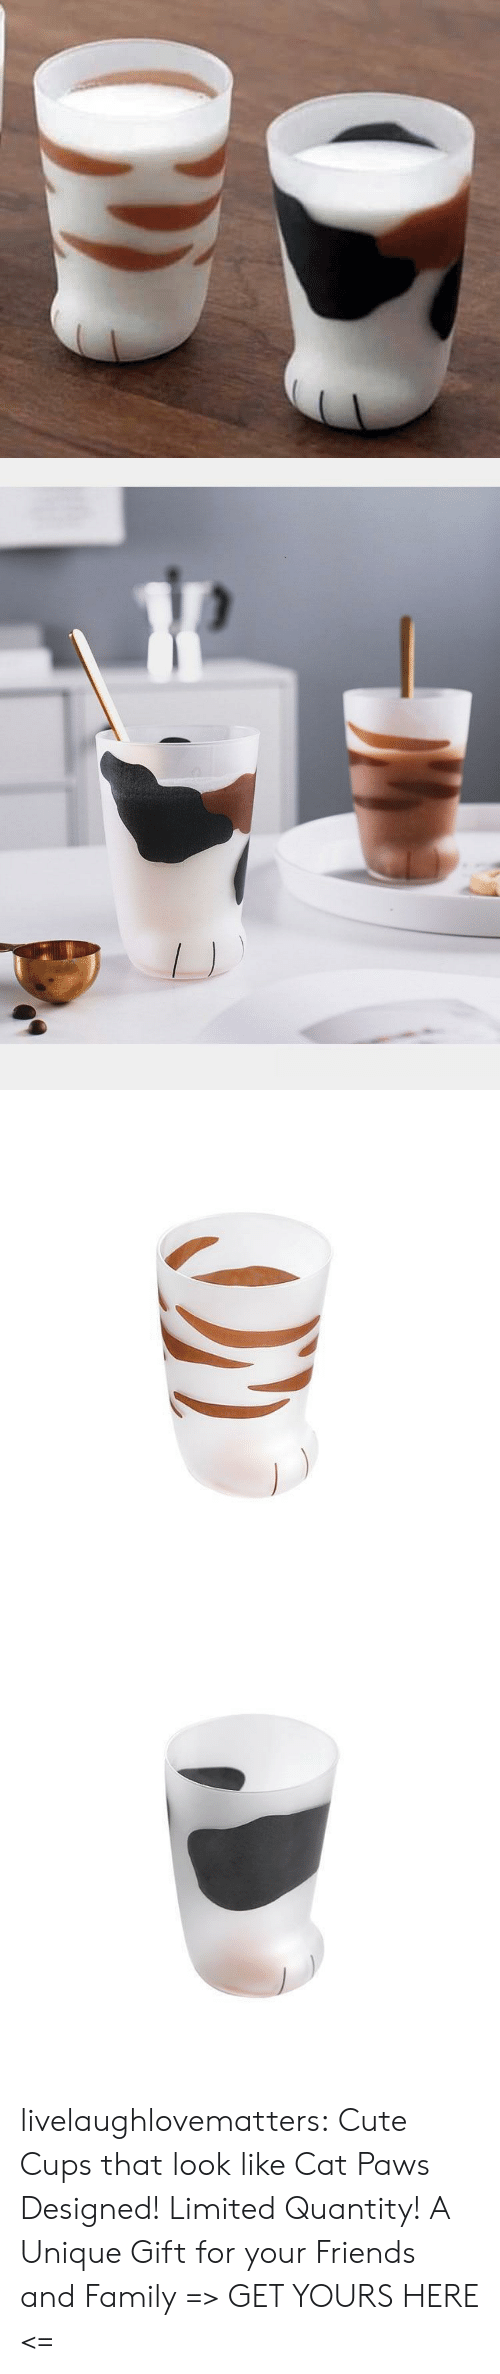 That Look: livelaughlovematters:  Cute Cups that look like Cat Paws Designed! Limited Quantity! A Unique Gift for your Friends and Family => GET YOURS HERE <=